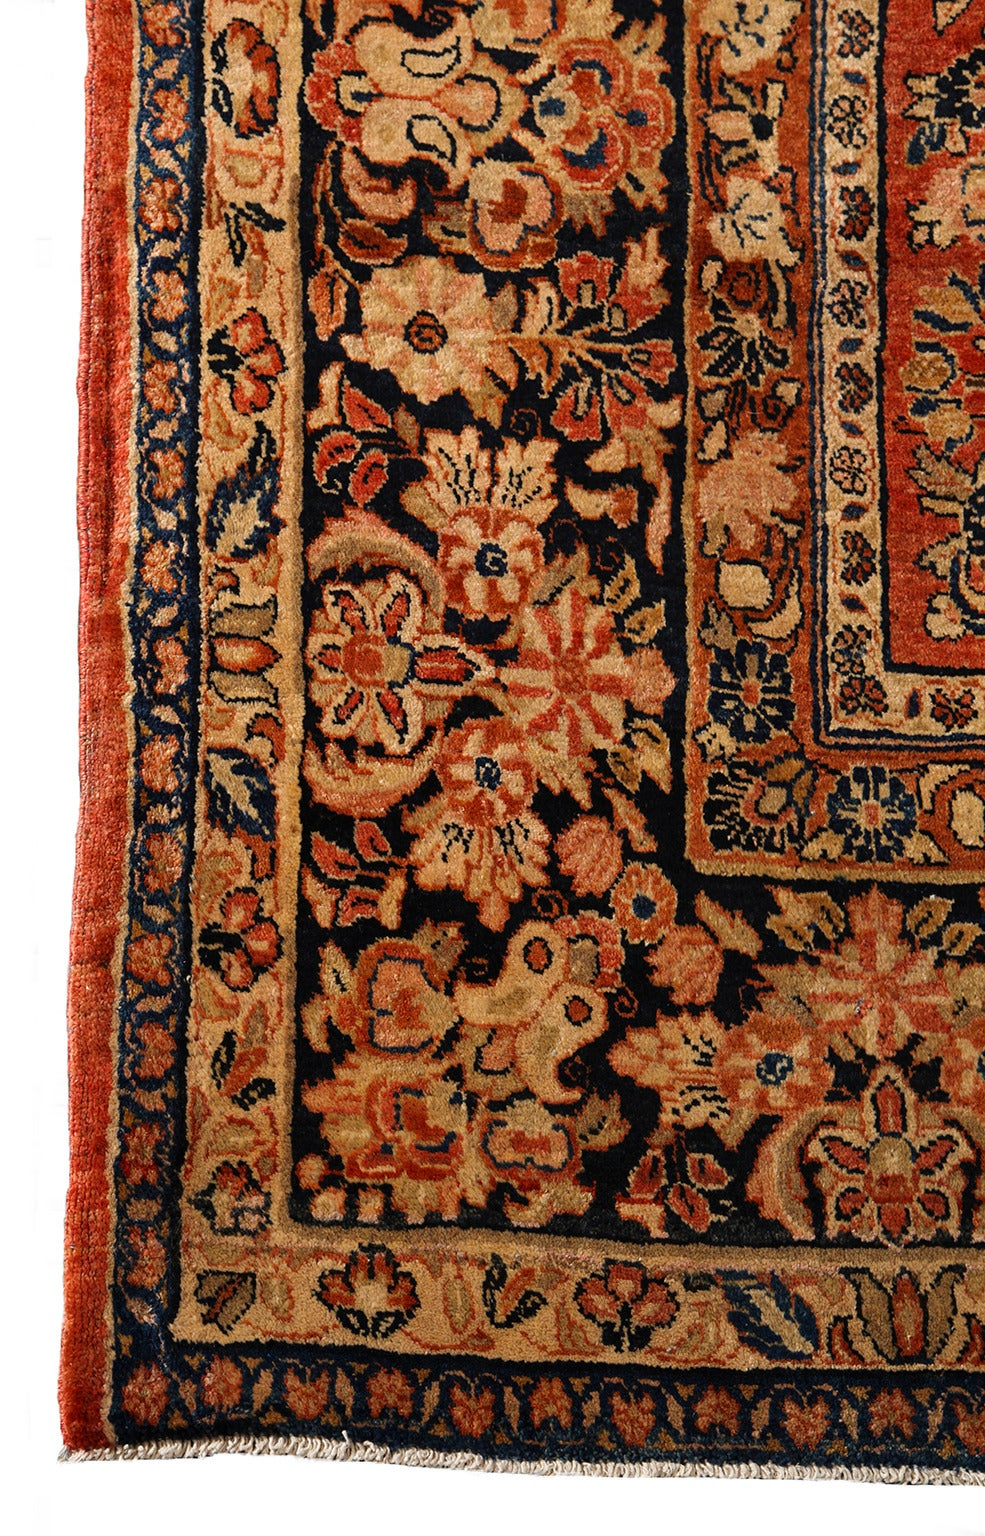 Persian Sarouk Carpet with Pure Wool Pile and Natural Vegetable Dyes, circa 1910 For Sale 3